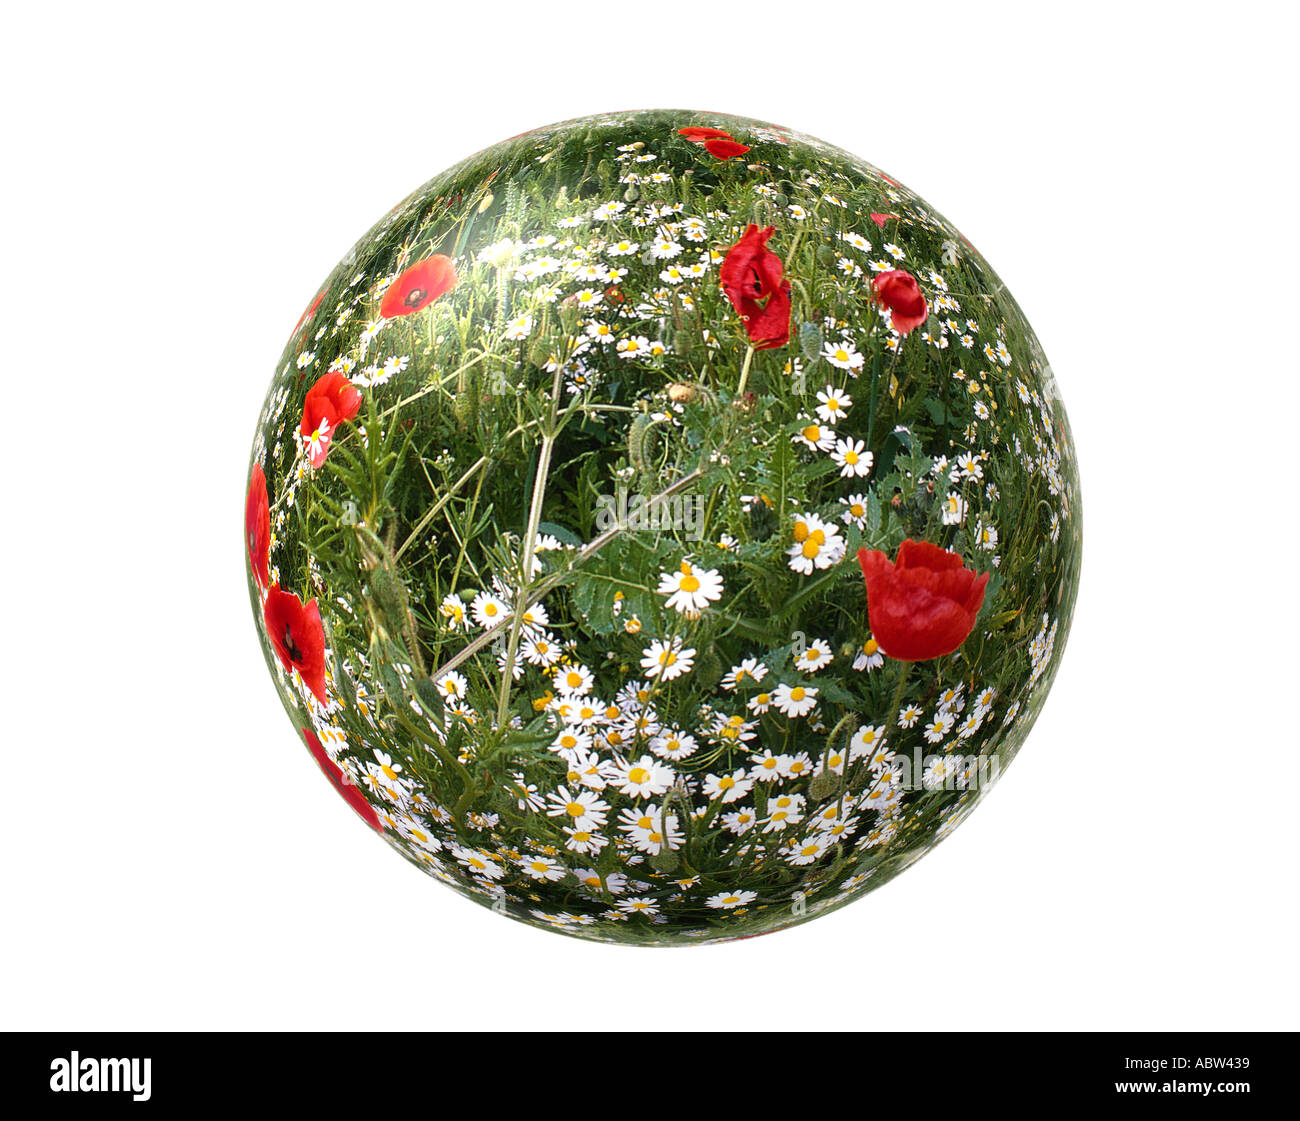 ENVIRONMENTAL CONCEPT: Our World - Stock Image